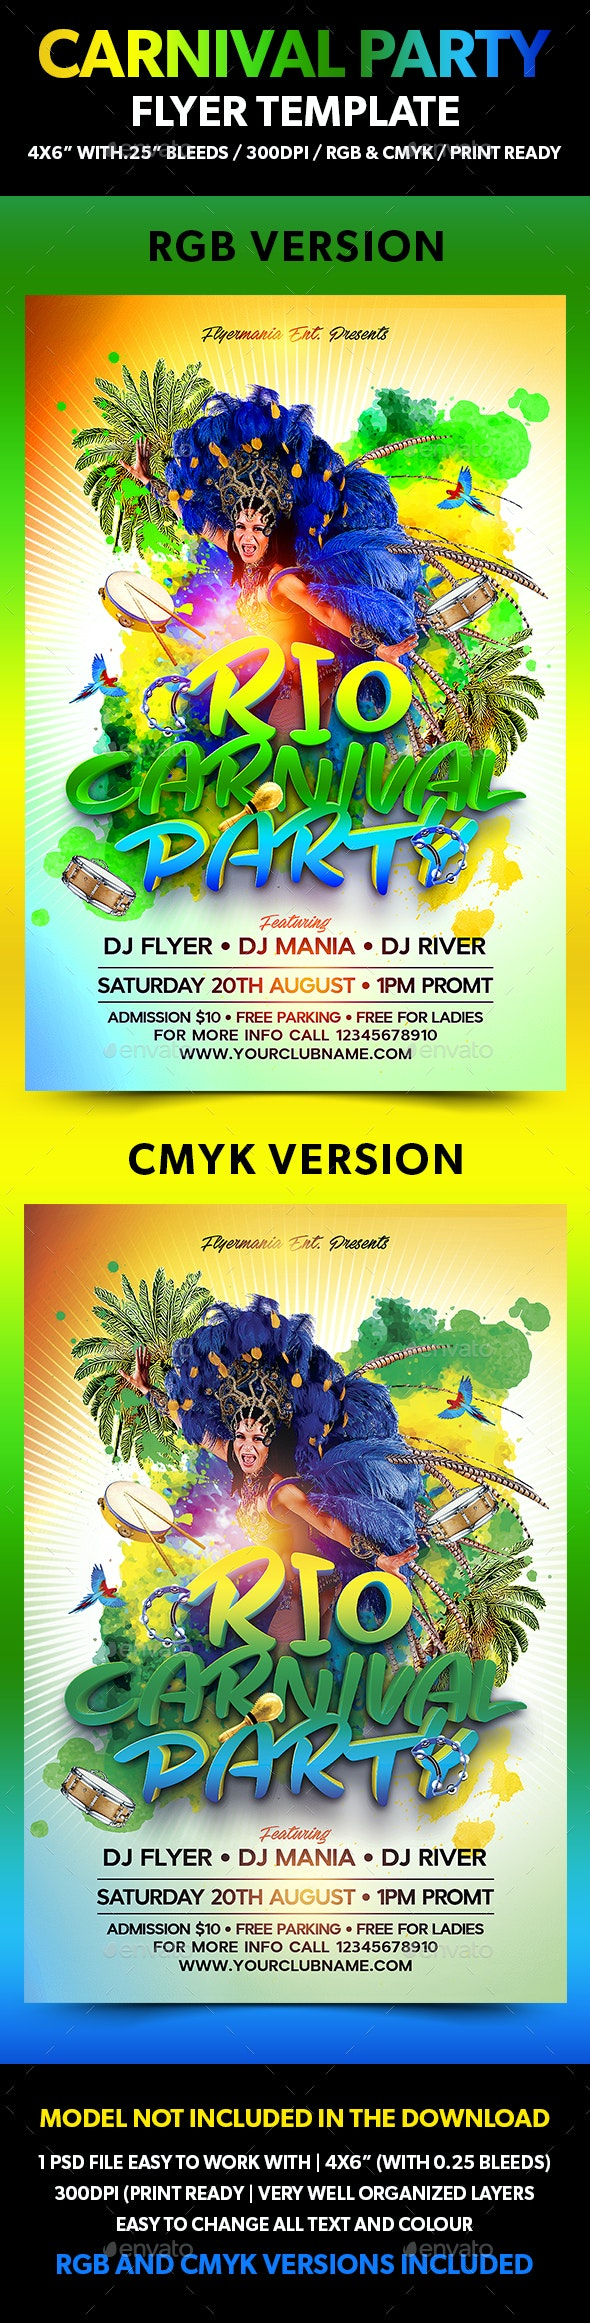 Carnival Party Flyer Template - Flyers Print Templates